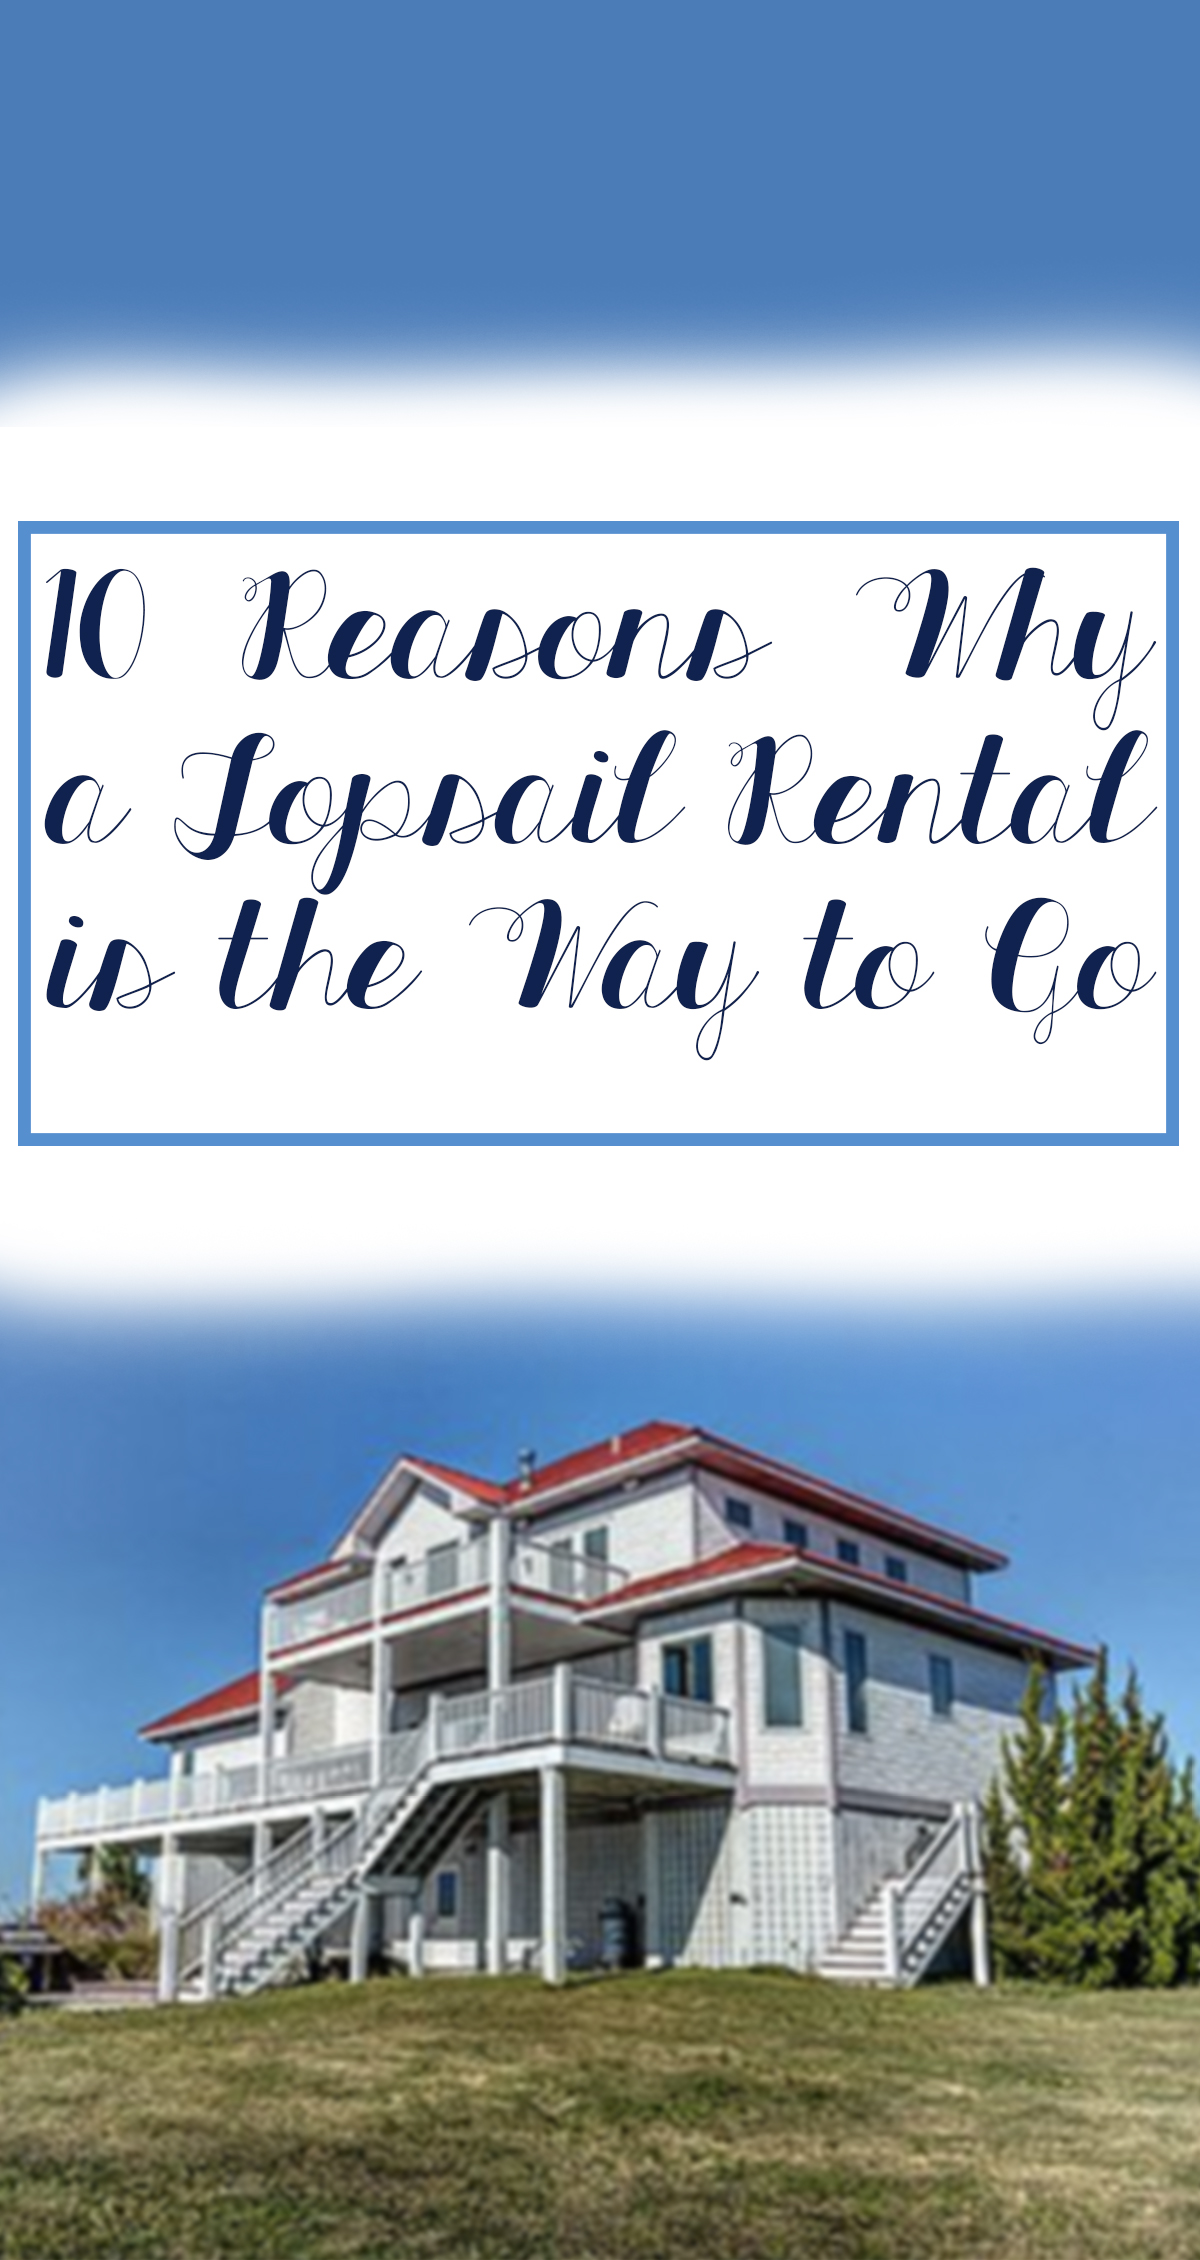 10 Reasons Why a Topsail Rental is the Way to Go Pin